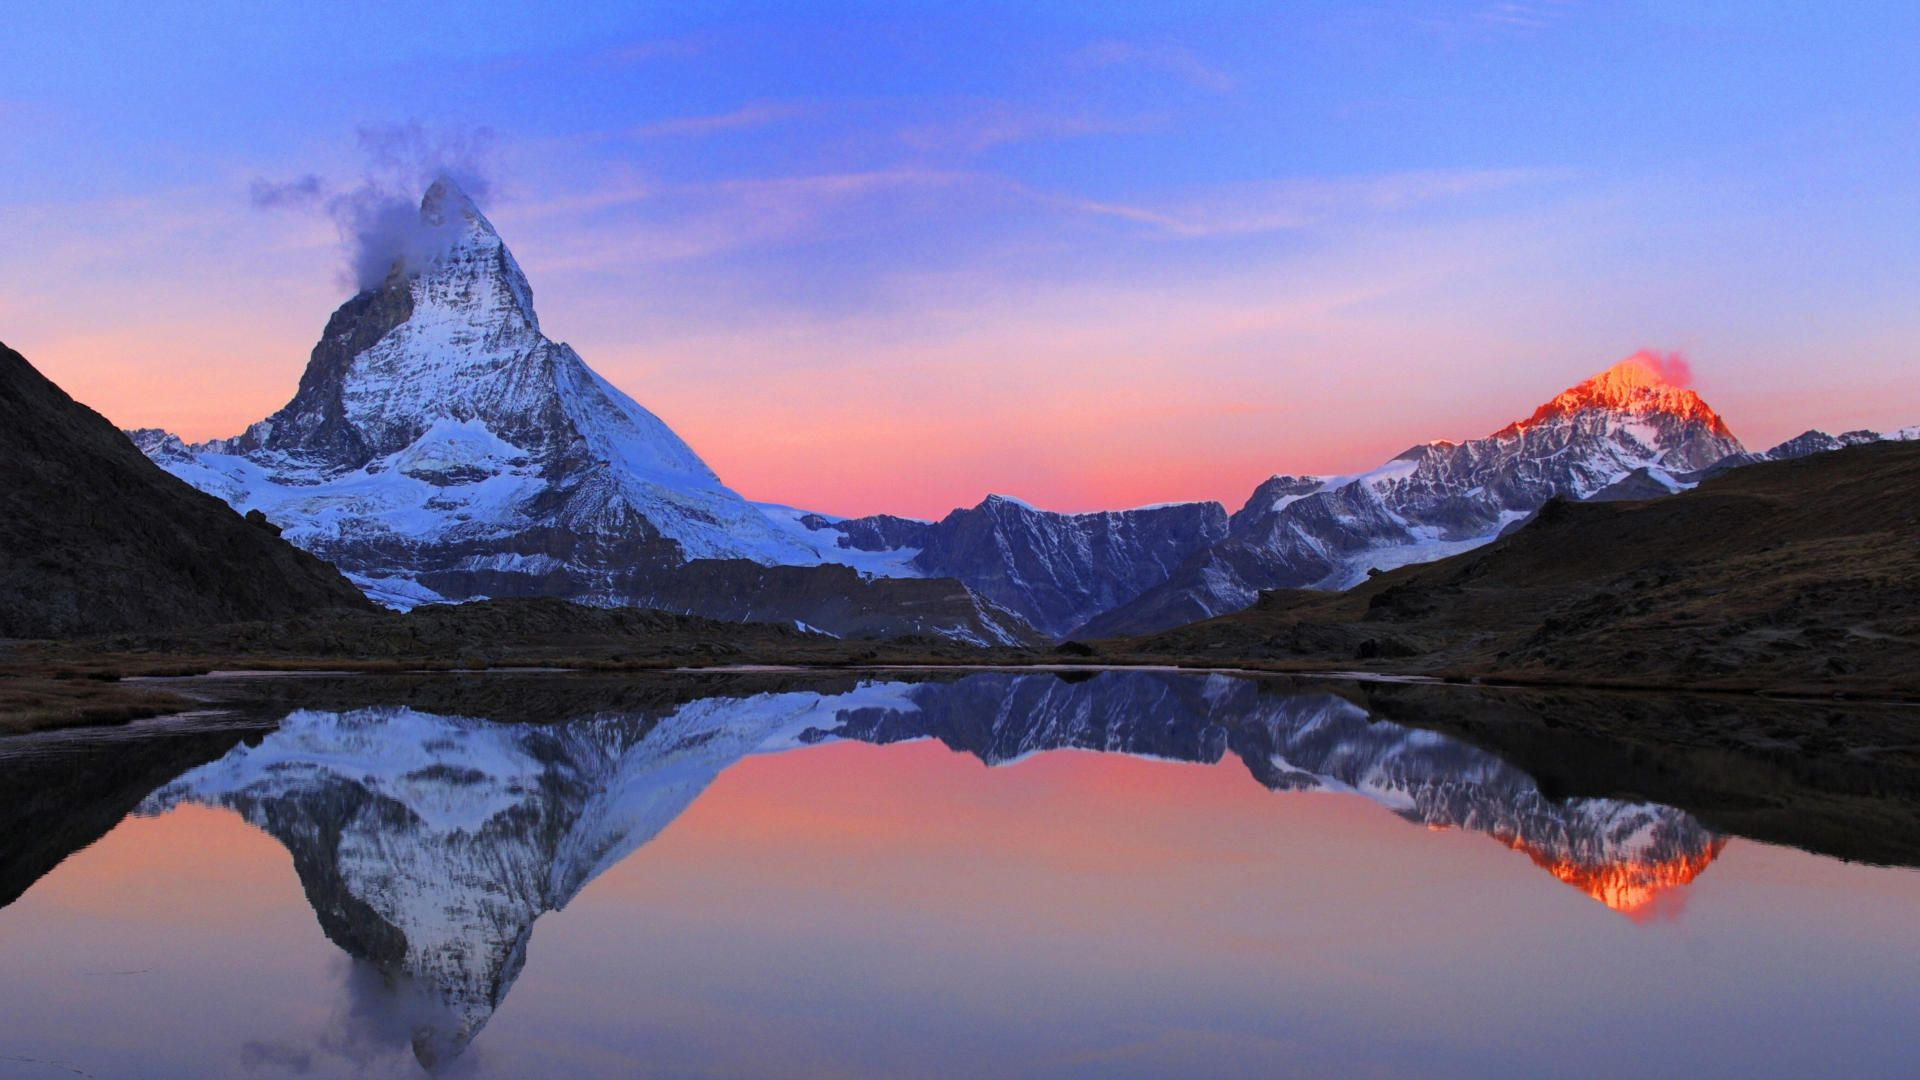 switzerland matterhorn desktop background images wallpaper | sziklák